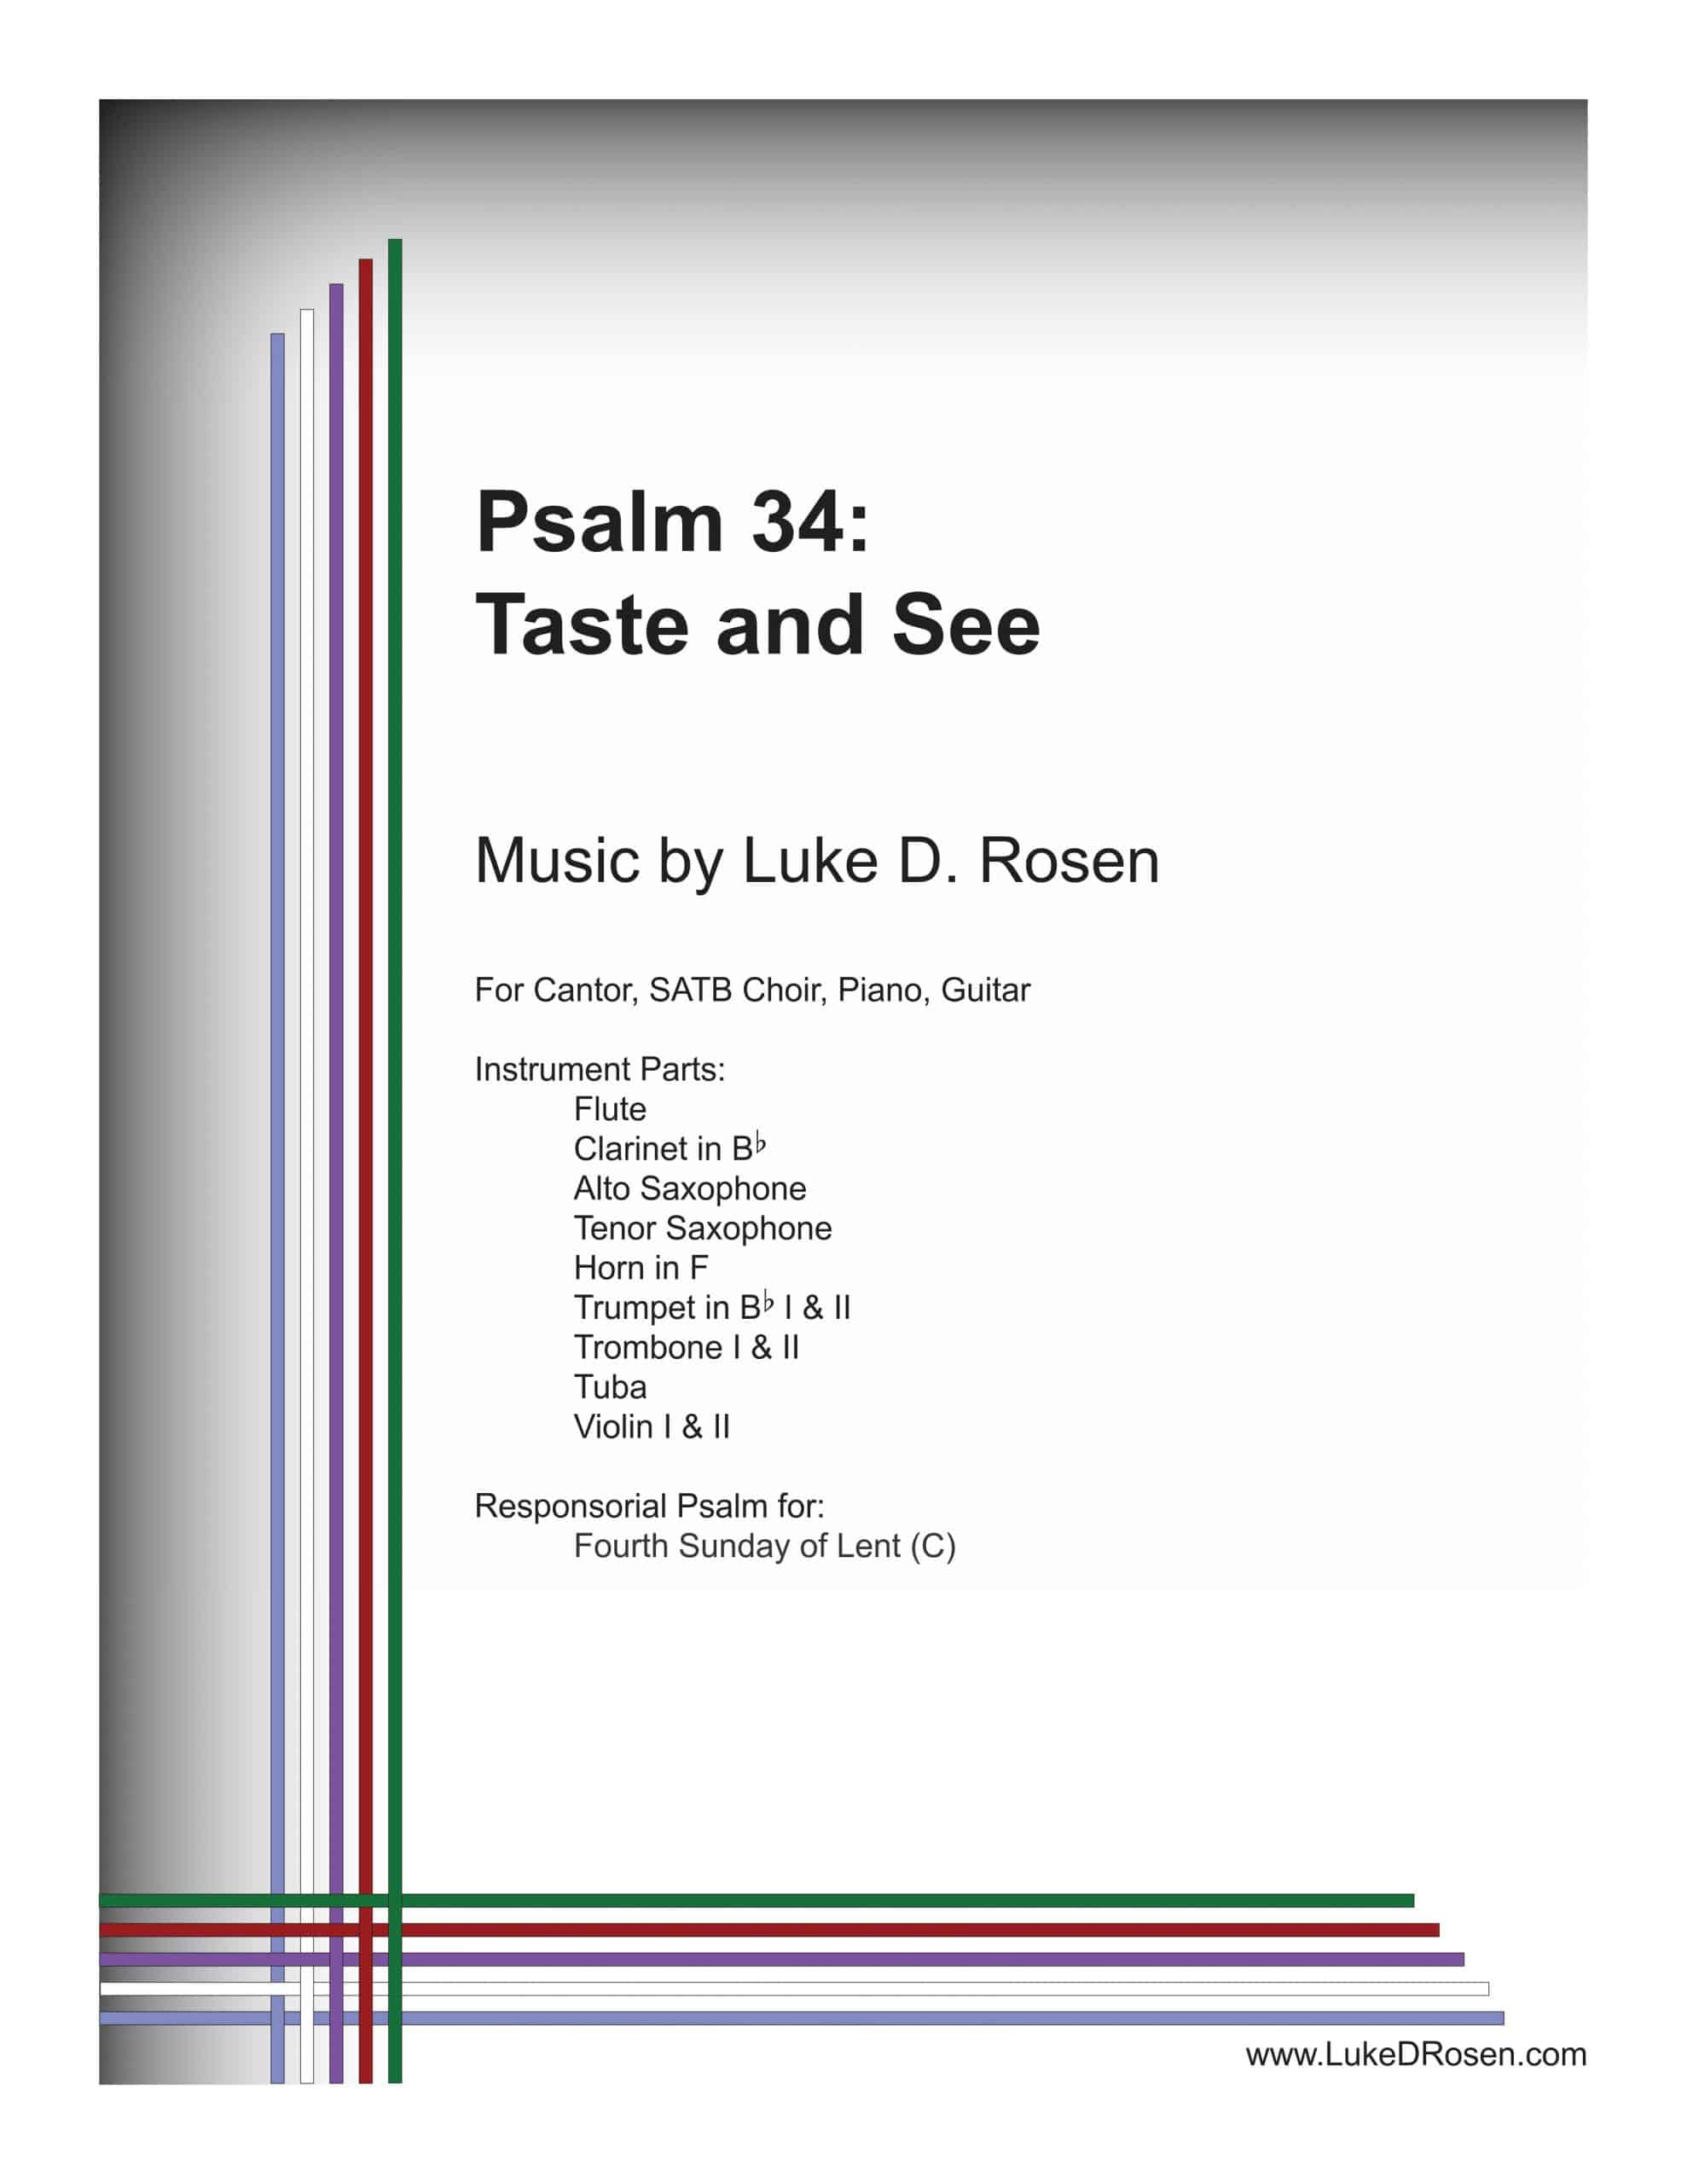 Psalm 34 Taste and See ROSEN Sample Complete PDF scaled